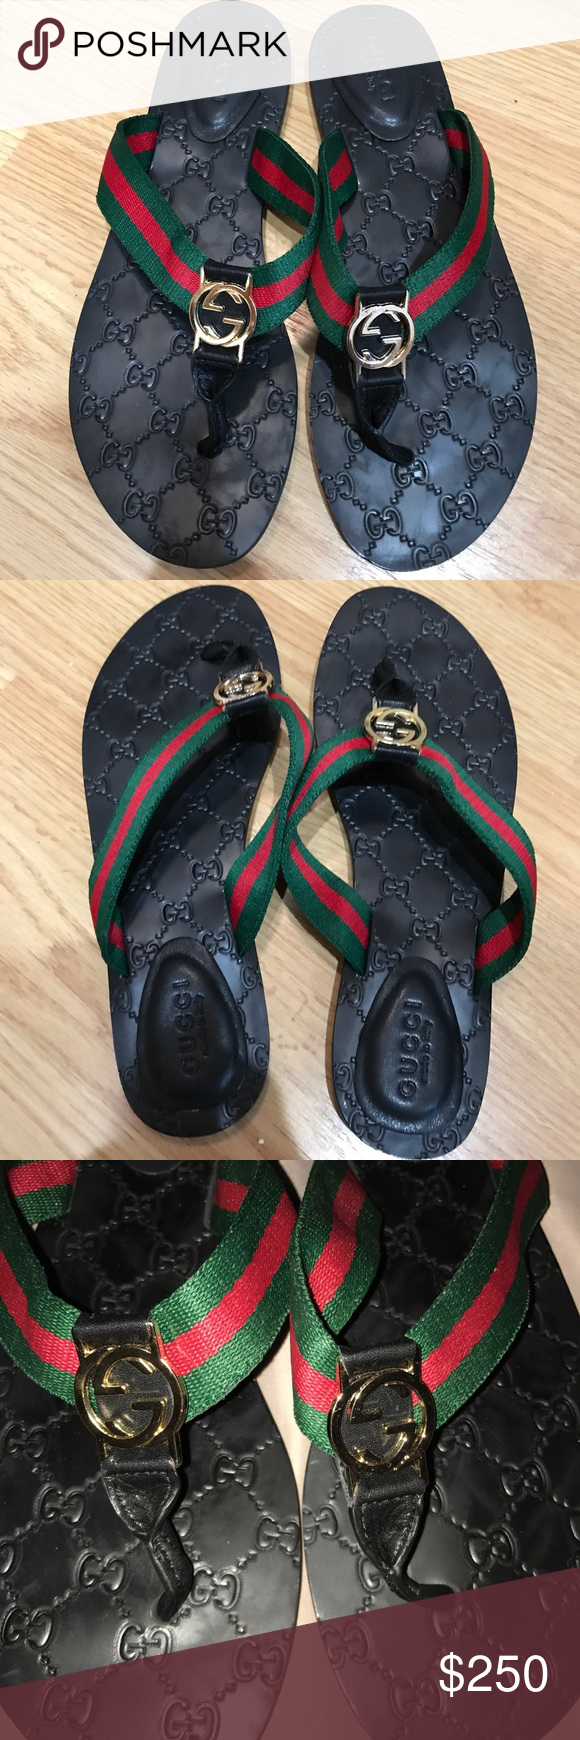 Web GG Gucci Slide Sandal All Authentic GG Gucci sandals come with dust bags no box. Size 11 Gucci Shoes Sandals